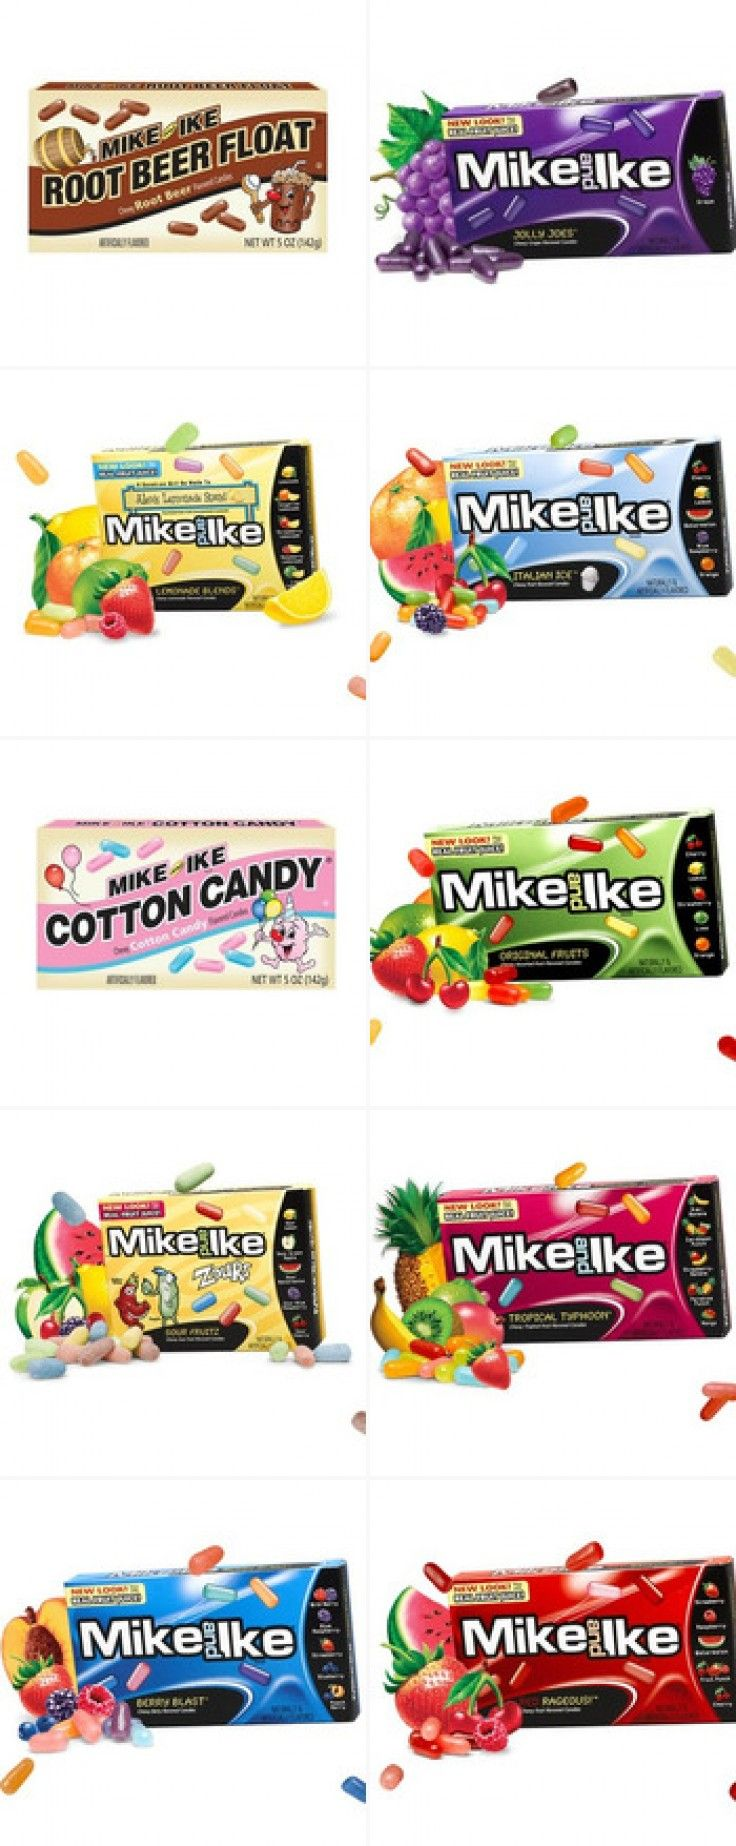 My Picks: Favorite MIKE AND IKE Flavors #Fave386106 #MikeandIkeFaves